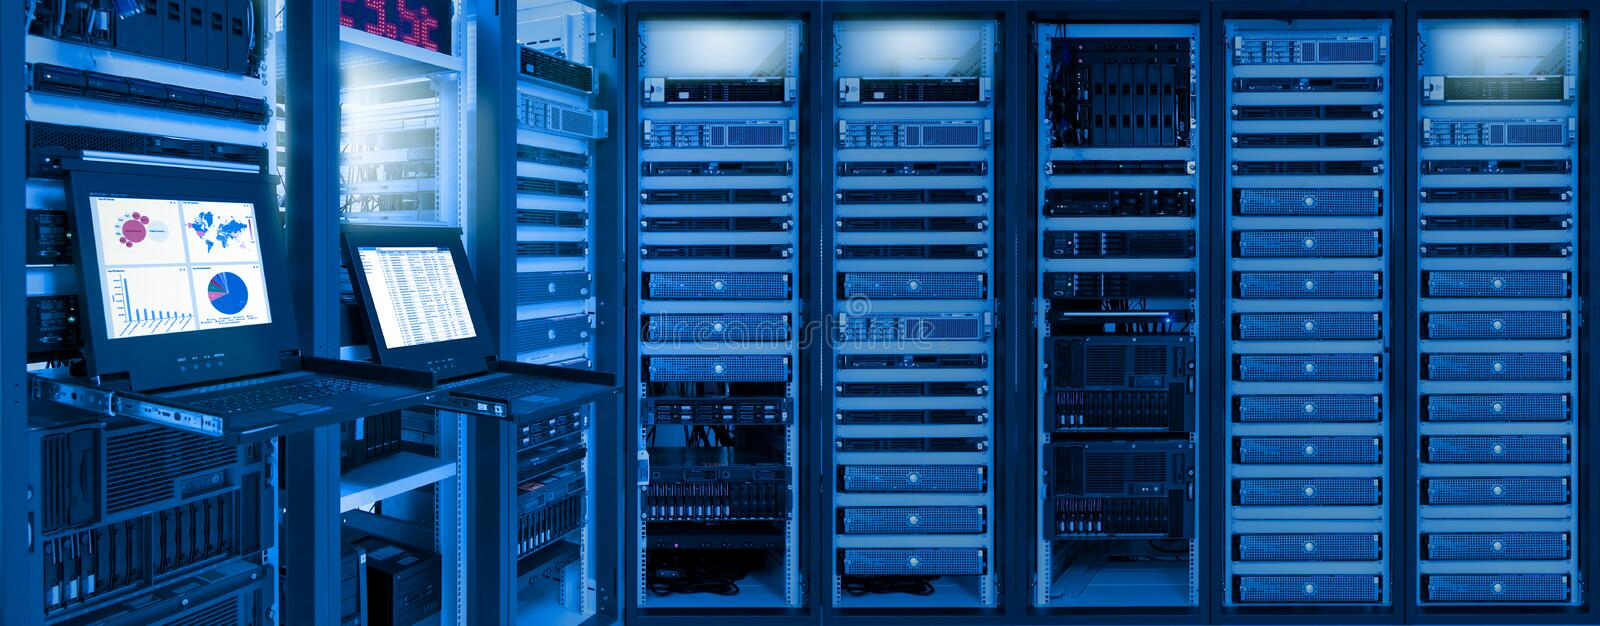 Information of network traffic and status of devices in data center room stock photo